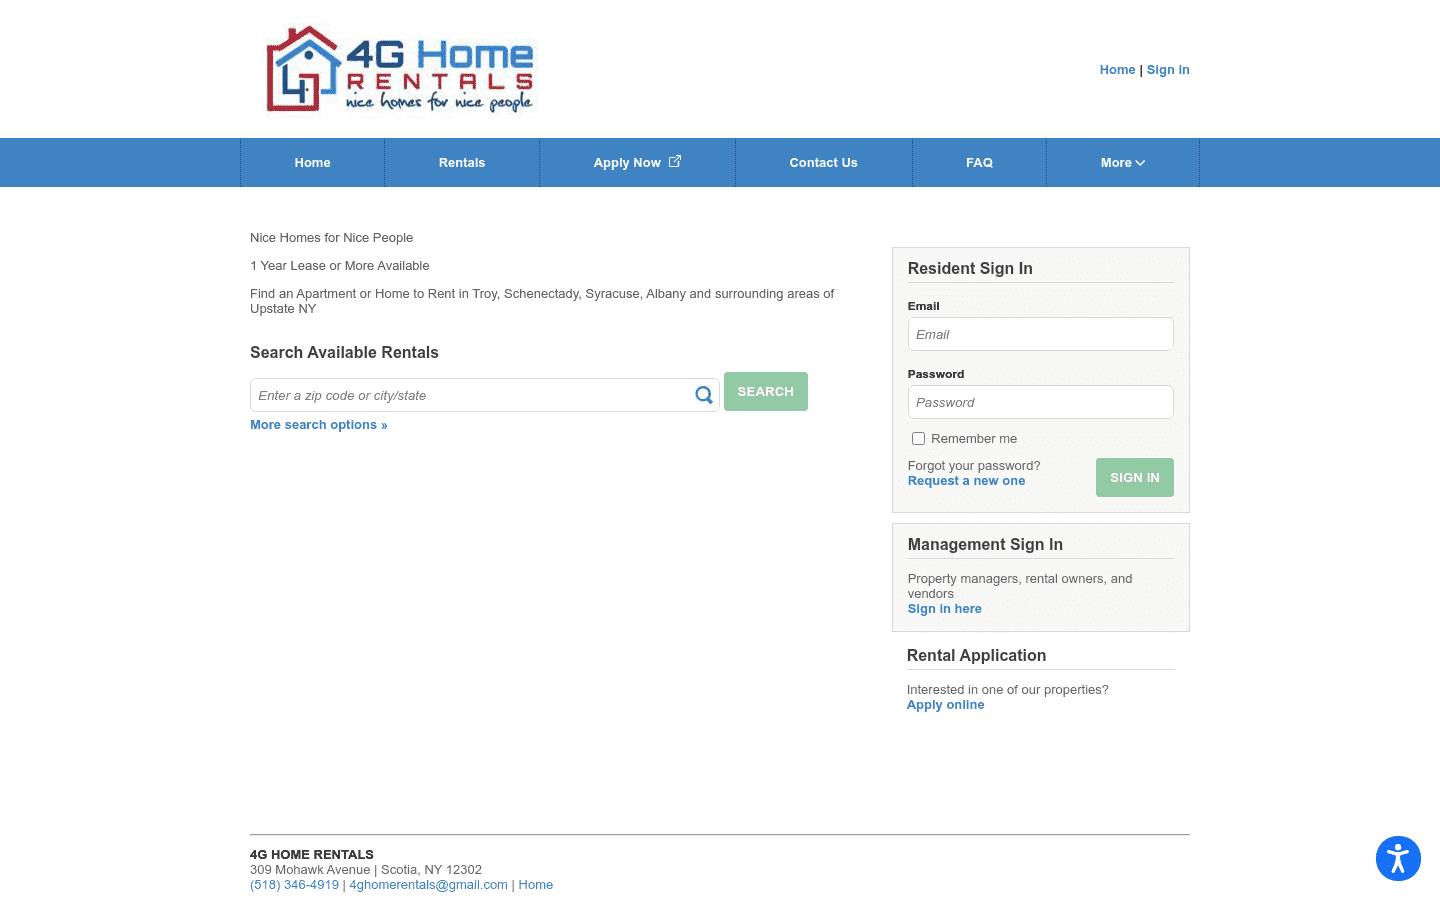 4G Home Rentals reviews and complaints